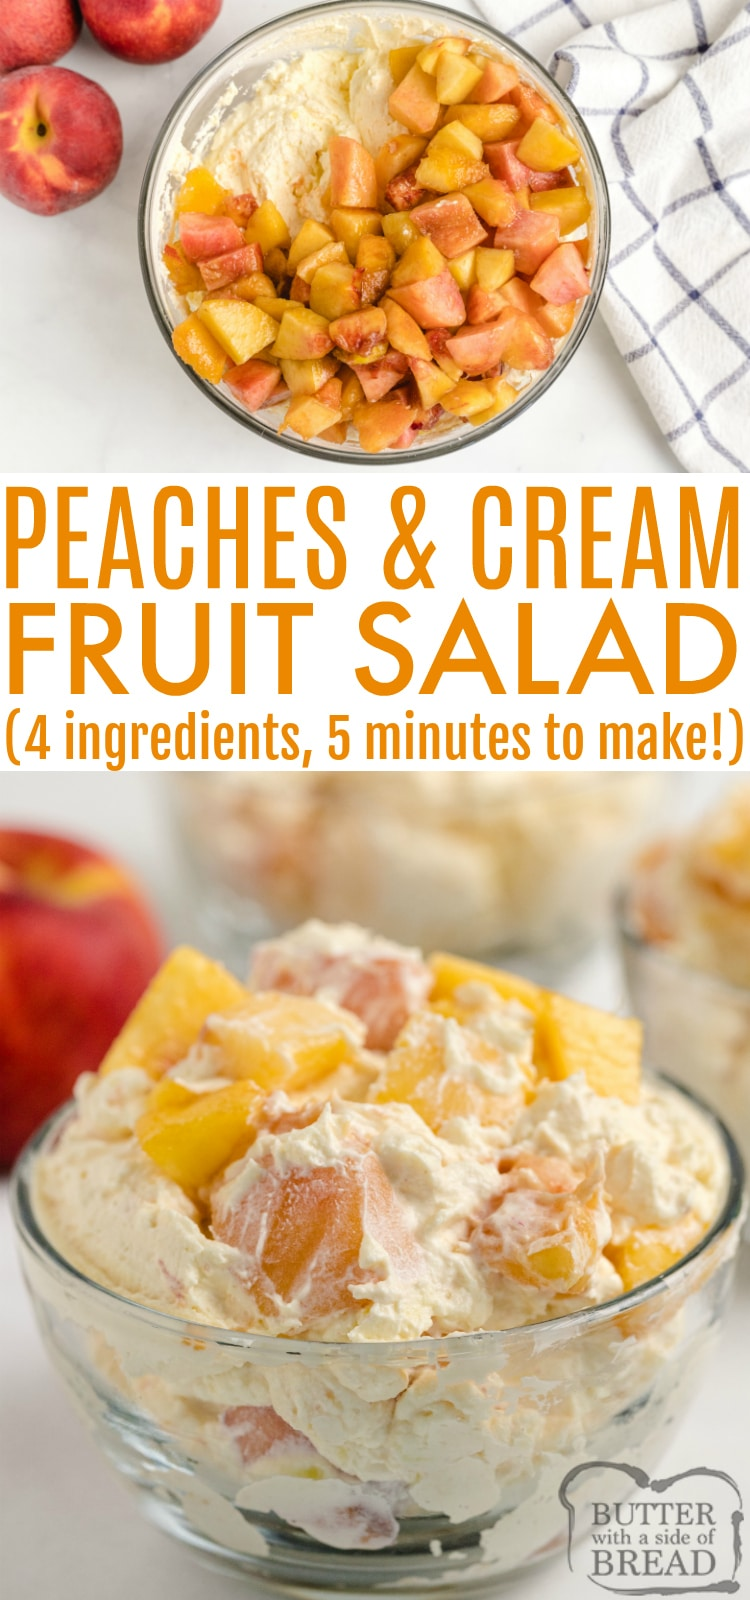 Peaches and Cream Salad is made with fresh peaches and makes a wonderful side dish or even a dessert! This easy fruit salad is made in less than 5 minutes with only 4 ingredients!